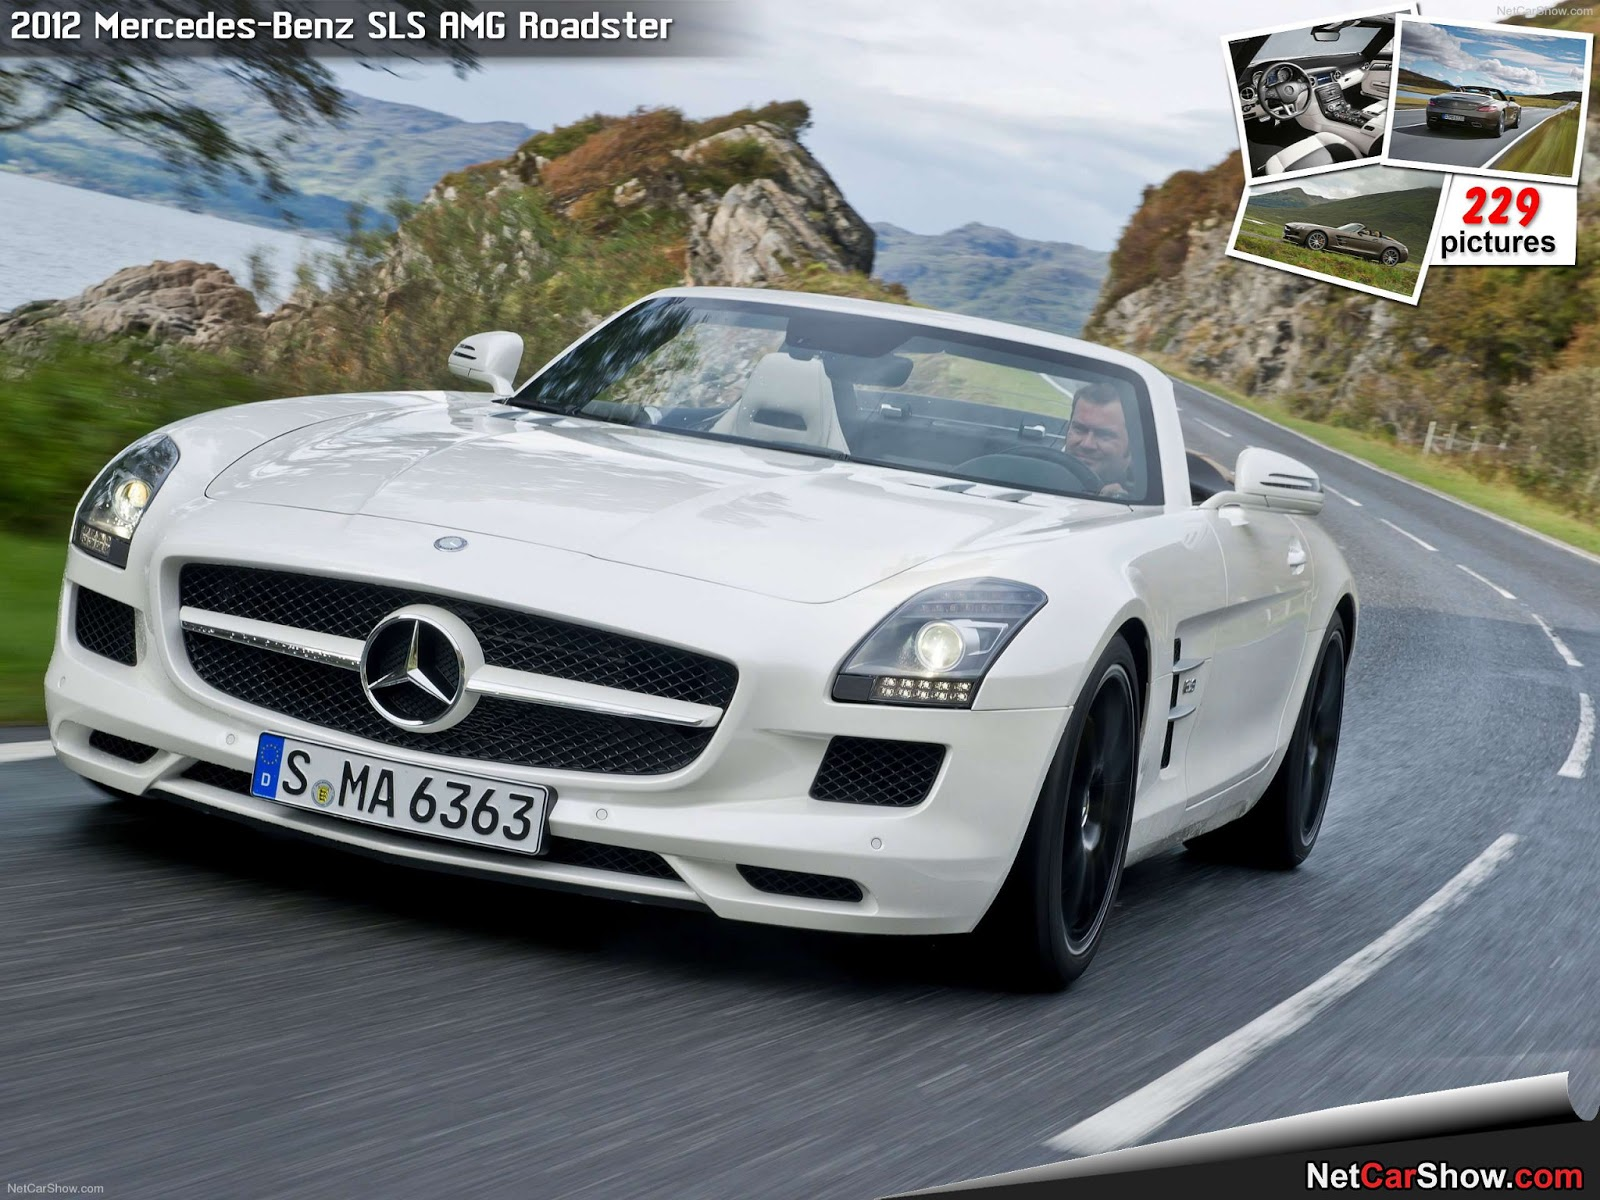 sports cars mercedes benz 2012 model